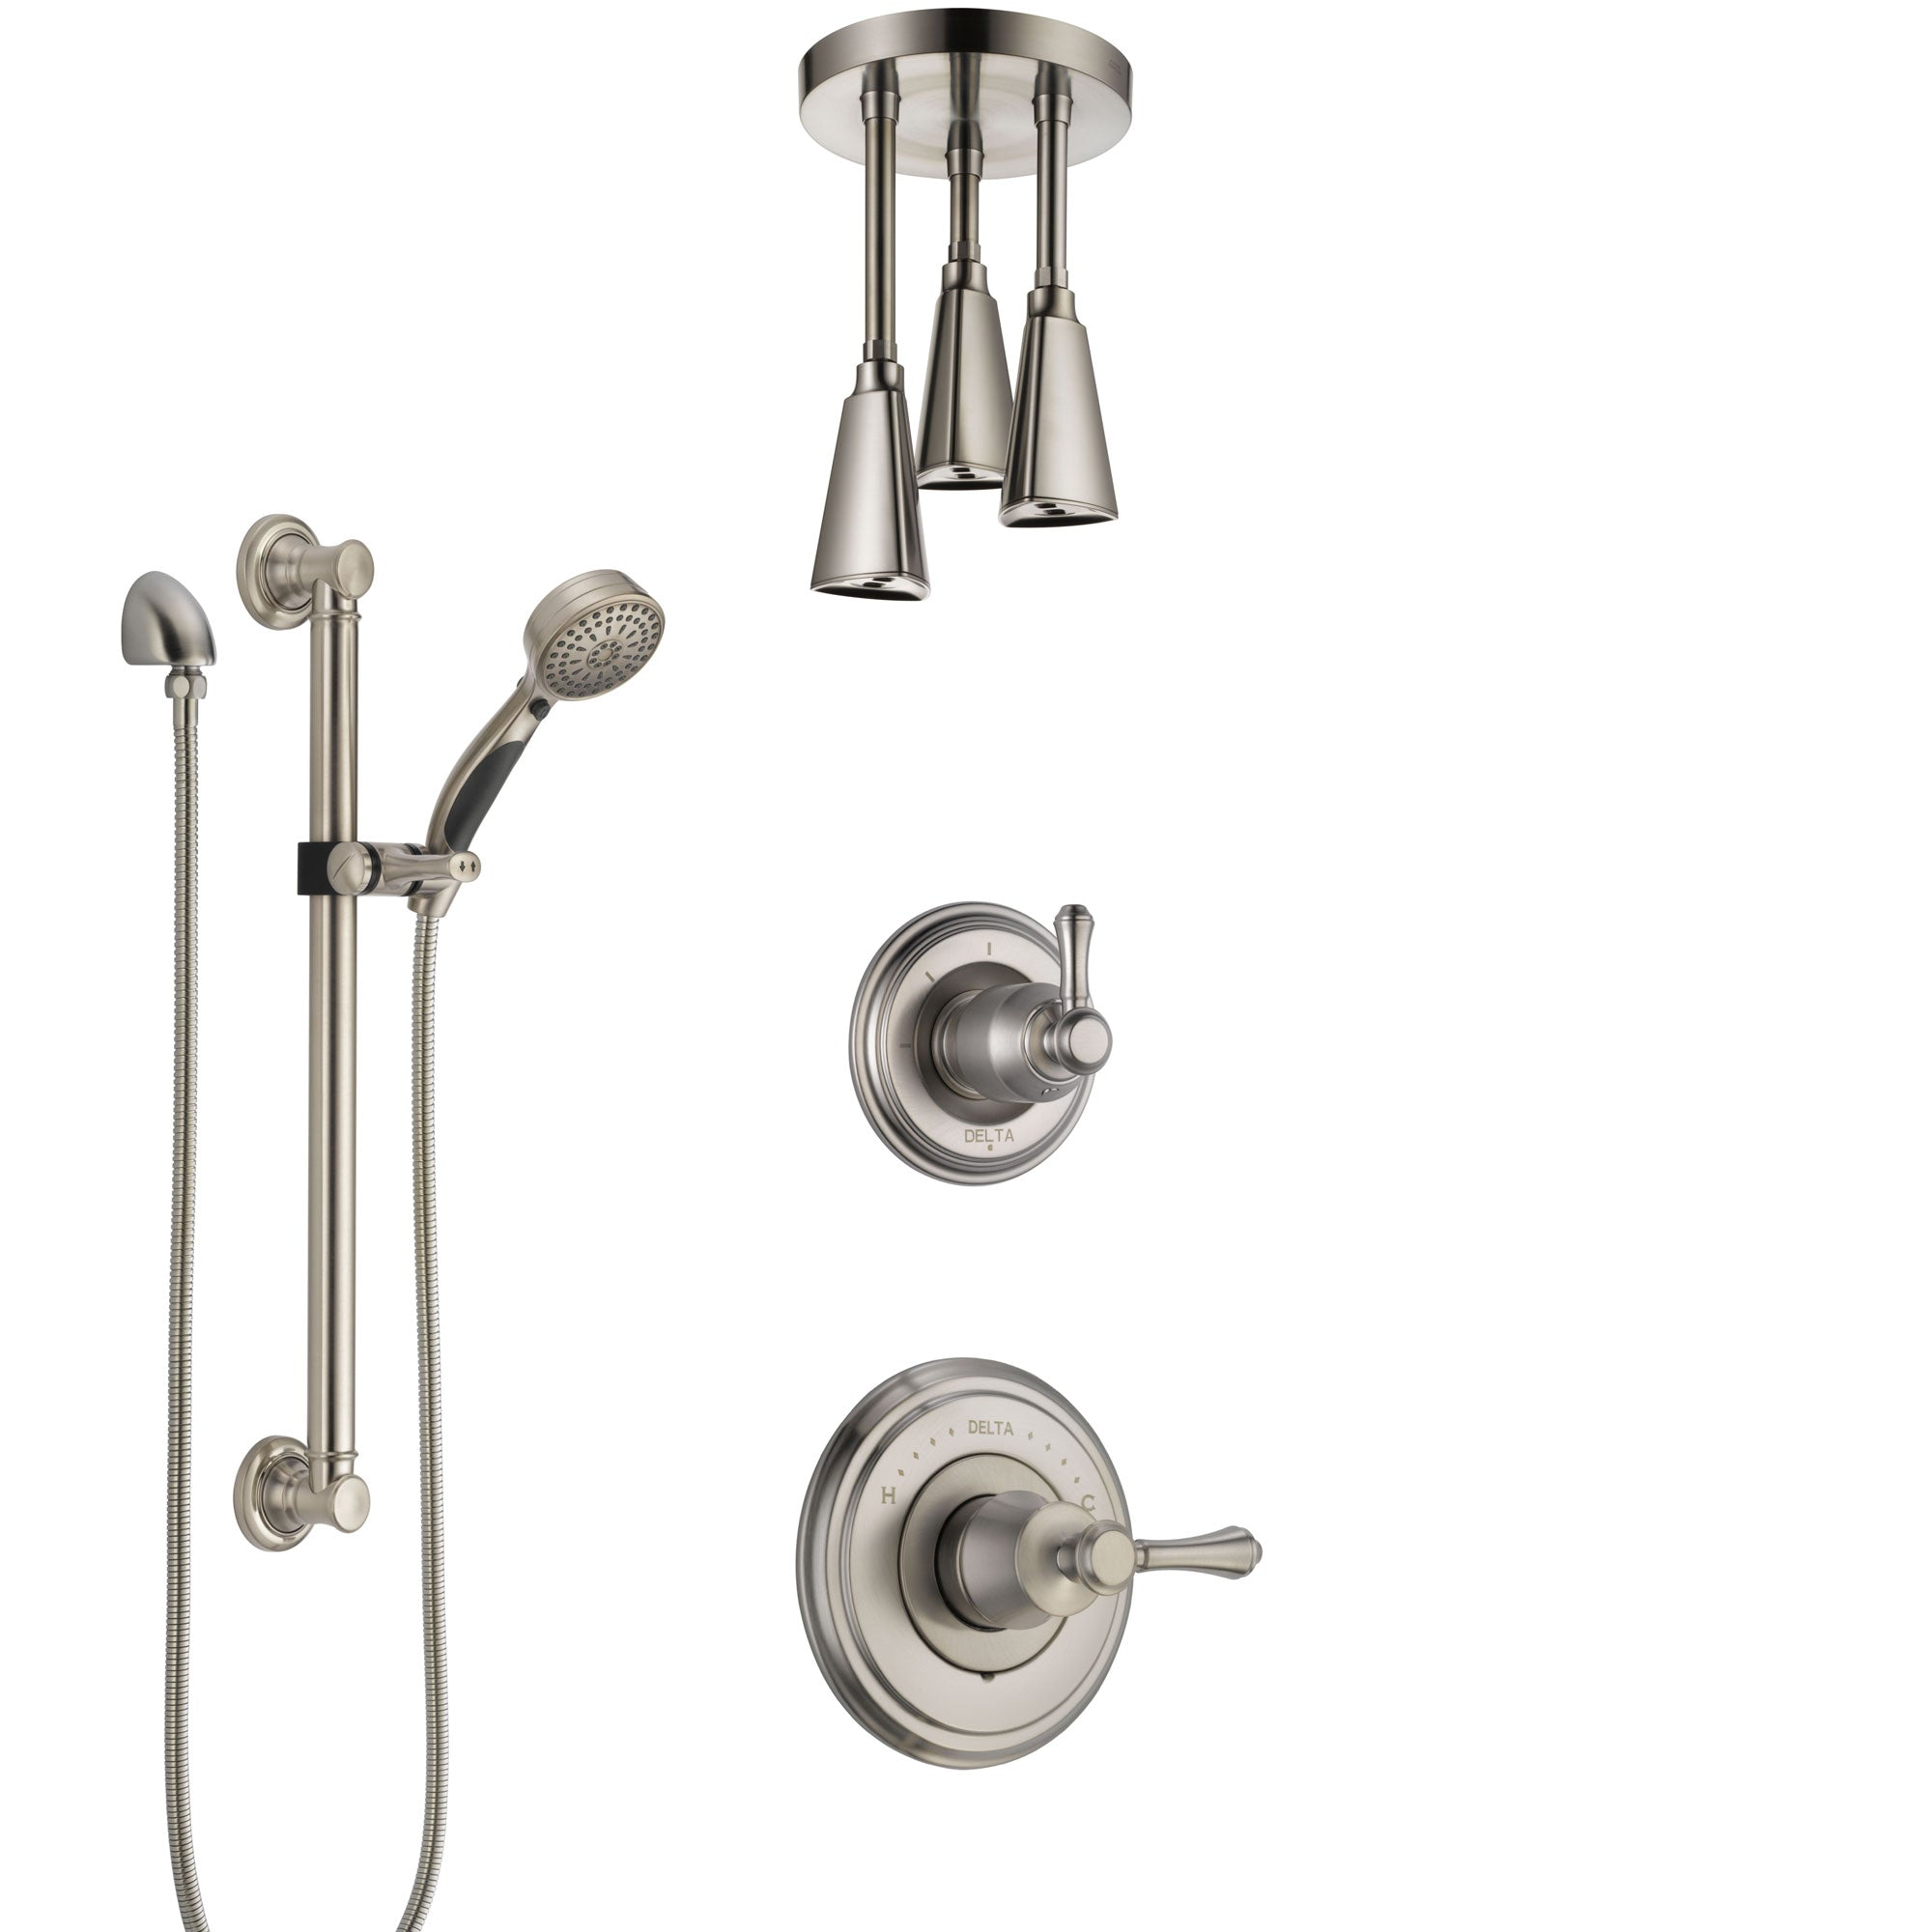 Delta Cassidy Stainless Steel Finish Shower System with Control Handle, Diverter, Ceiling Mount Showerhead, and Hand Shower with Grab Bar SS14973SS5